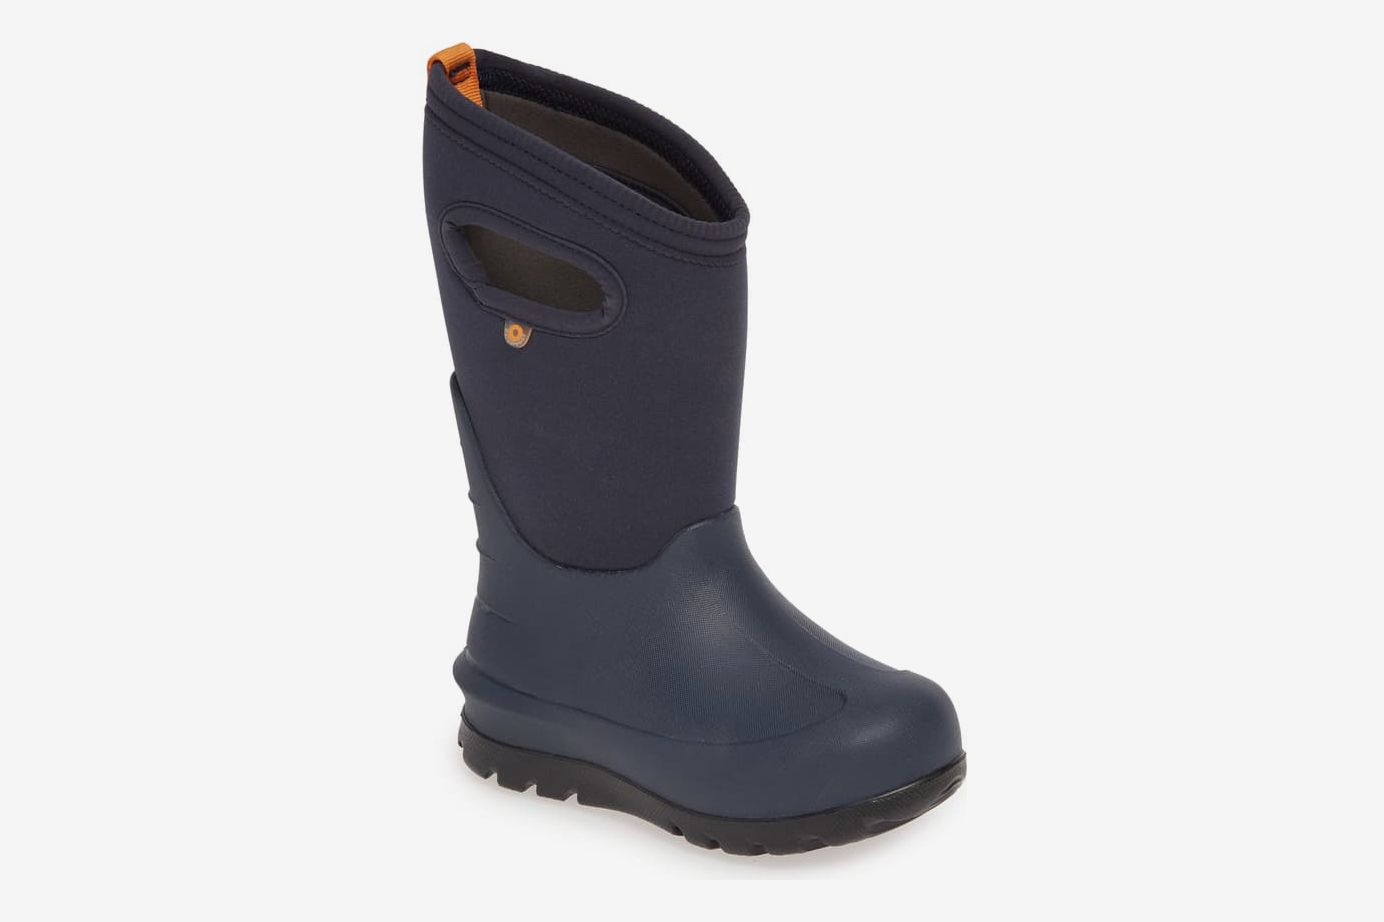 Bogs Classic Insulated Waterproof Boot